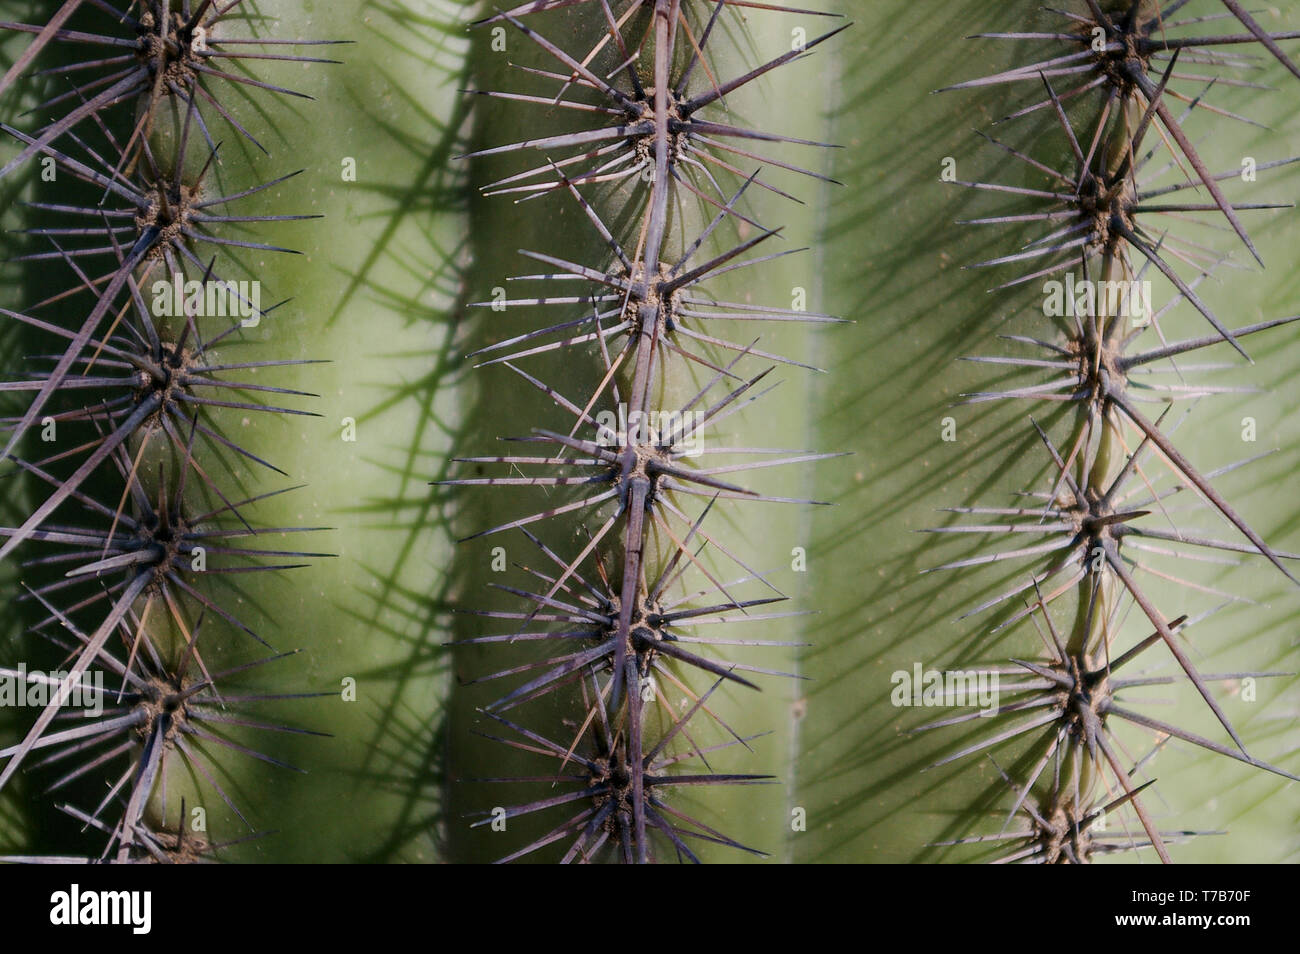 Saguaro Close Up - Stock Image